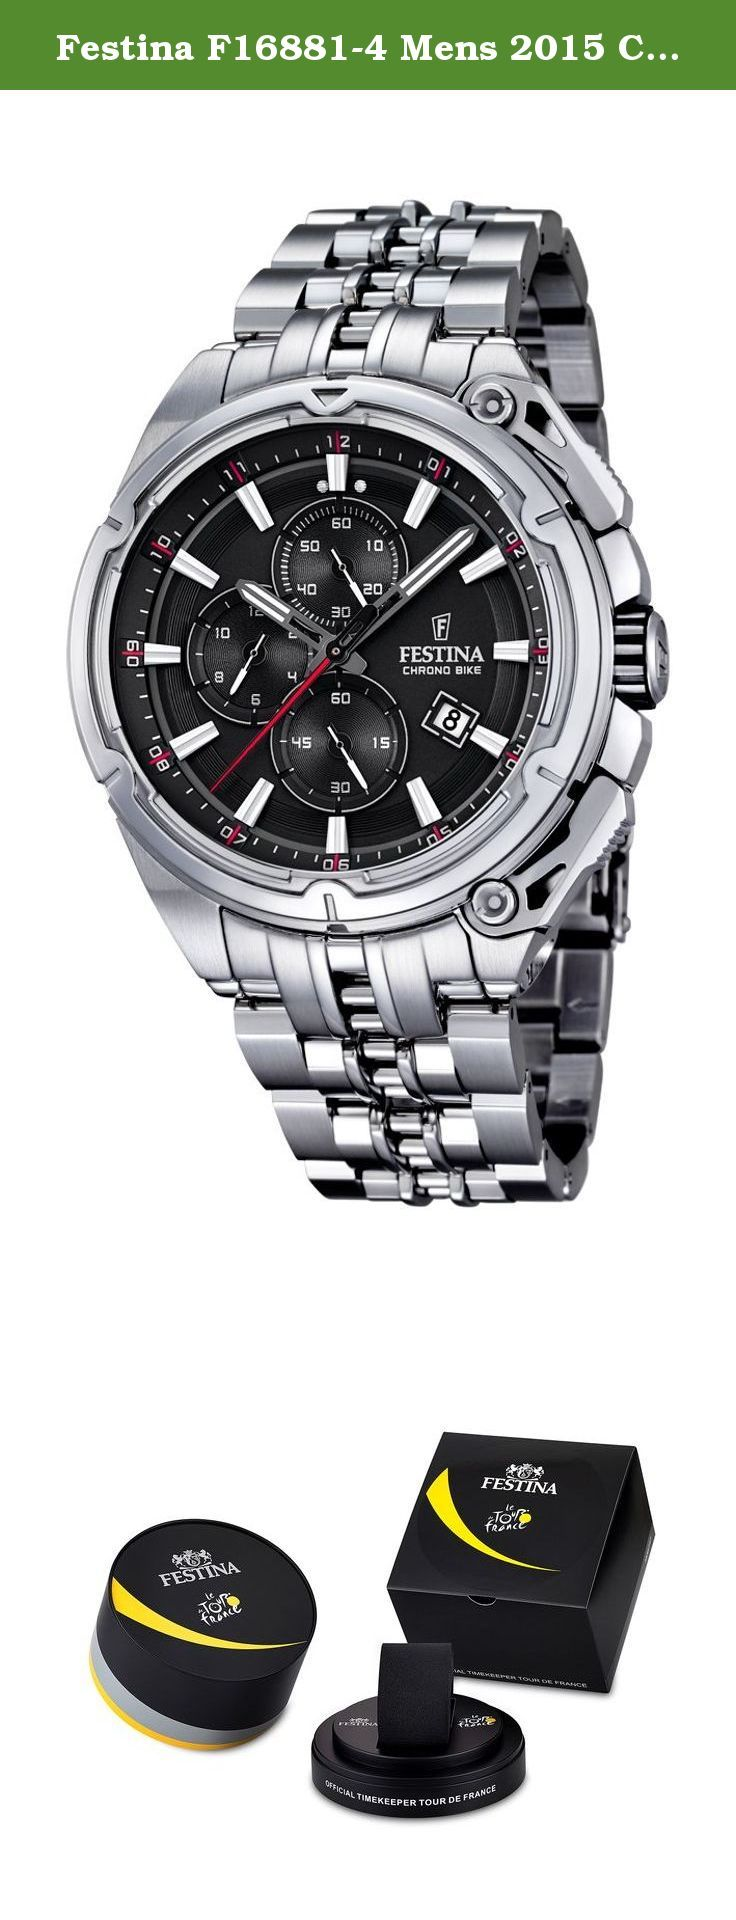 Festina F16881-4 Mens 2015 Chrono Bike Tour De France Silver Watch. Case - Case Material: Stainless Steel (brushed/polished) - Case Shape: Round - Case Colour: Silver - Bezel made of: Stainless Steel (brushed) - Crystal: Mineral crystal - Back: Srewed-in back Movement - Display Type: Chronograph (11hour, 59min, 59sec) - Movement: Quartz - Calendar: Date - Complications: 3: Chronograph: Hours, Minutes & small Second - Dial Colour: Black - Dial Style: Sun grinding - Illuminated: fluorescent...